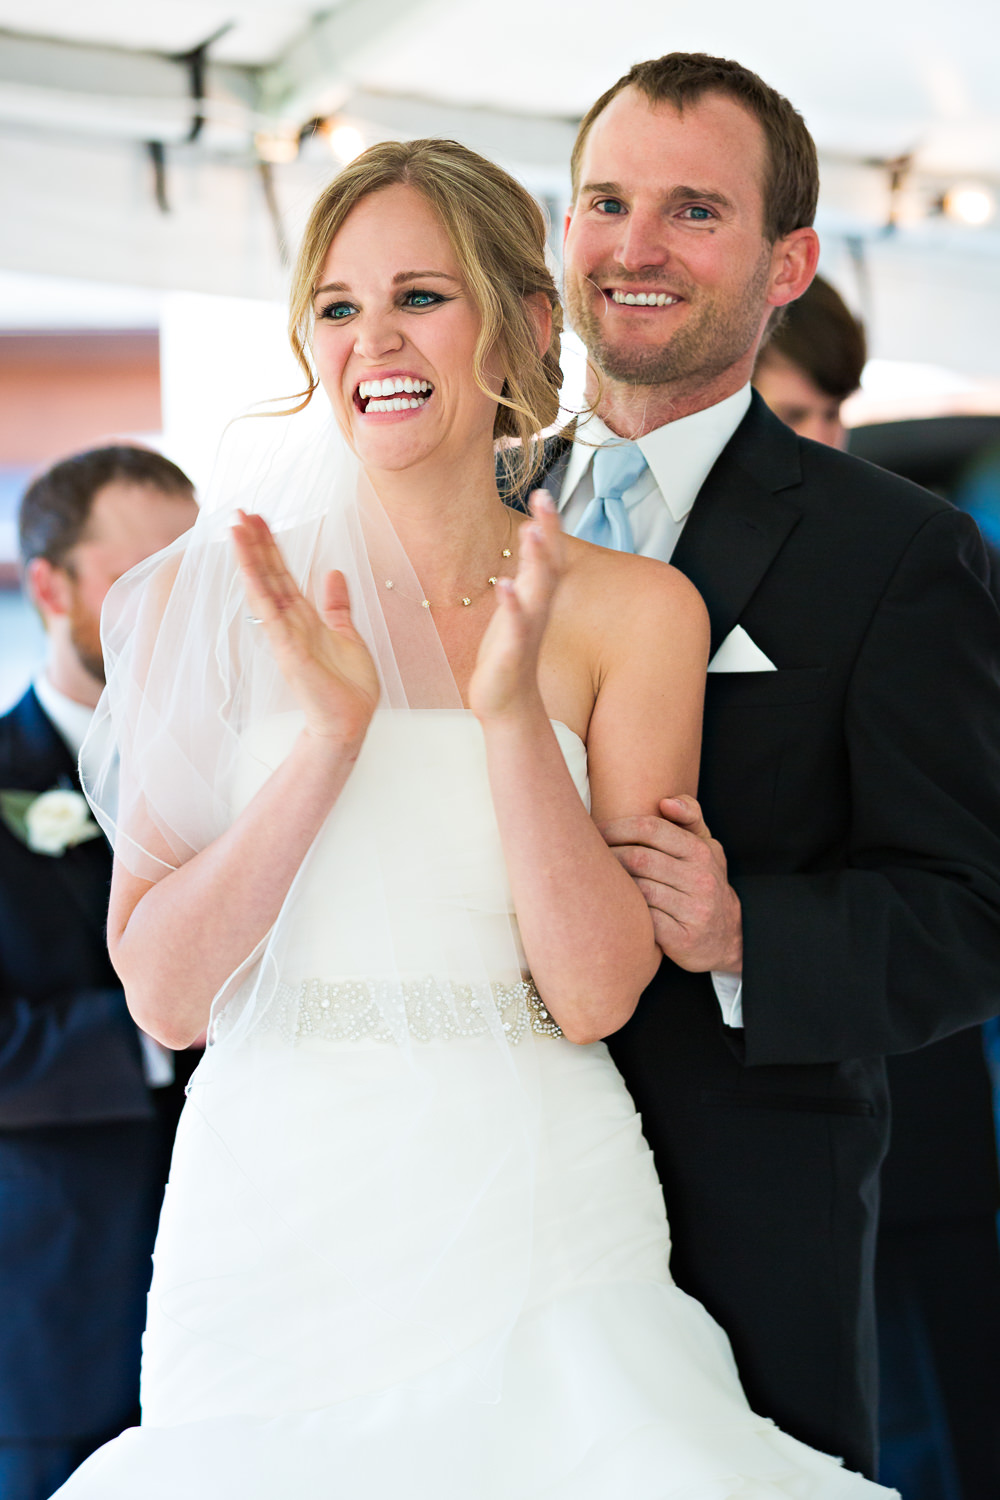 big-sky-resort-weddings-bride-groom-ceremony-laughter.jpg